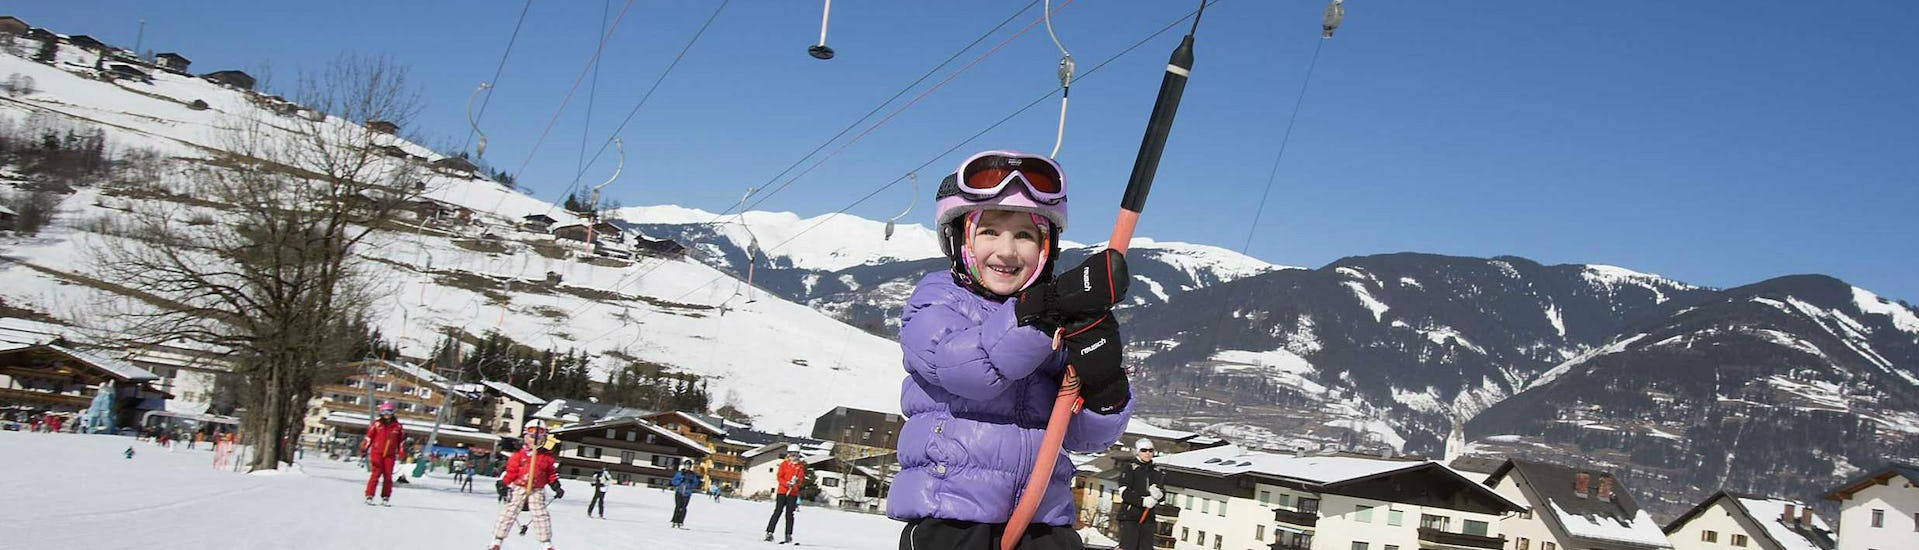 Ski Instructor Private for Teens - All Levels